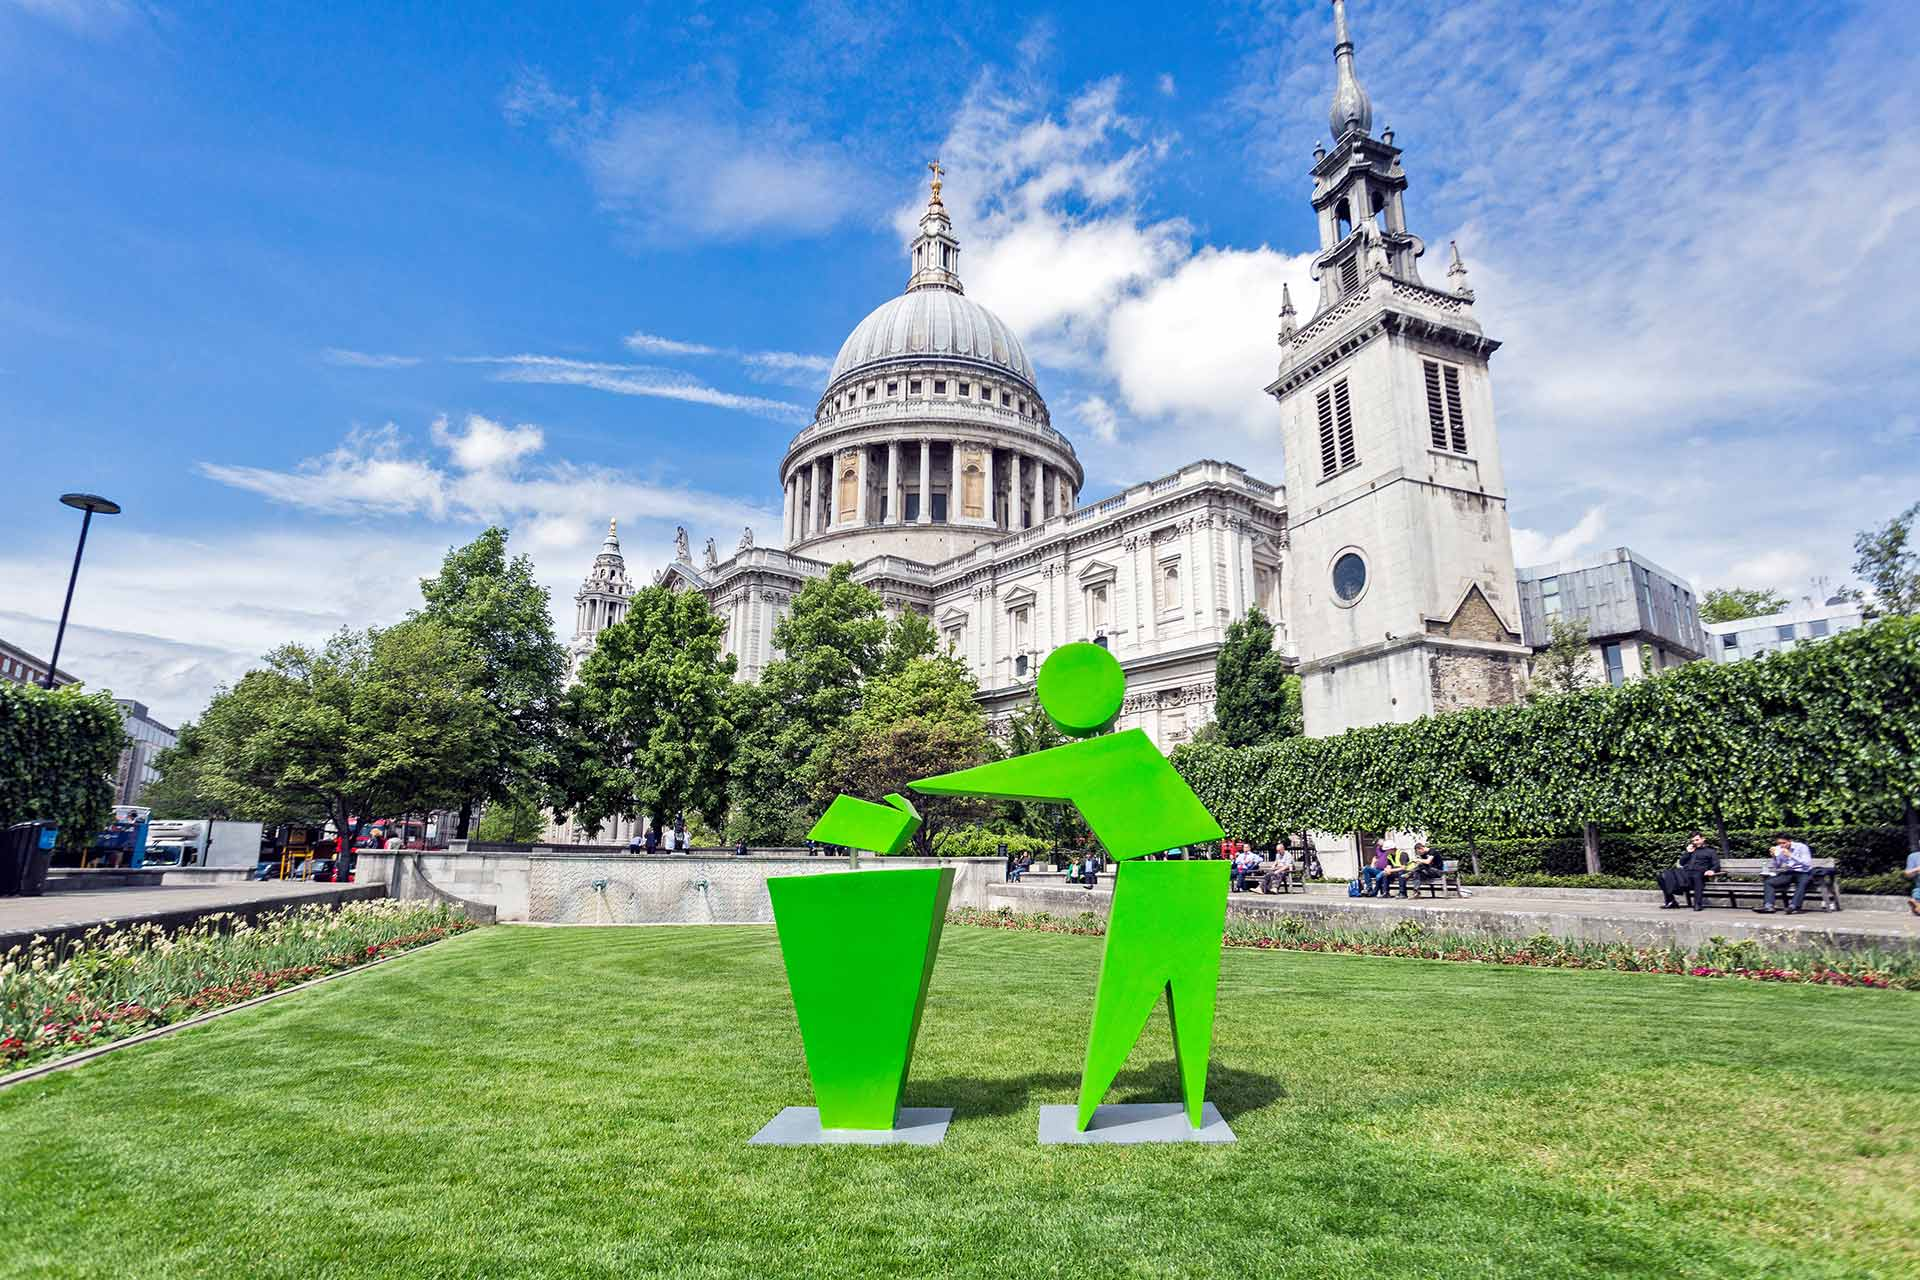 Keep-Britain-Tidy-and-Harrogate-Water-with-the-Tidyman-at-St-Paul's-Cathedral-London-16th-May-2017-©-Brendan-Foster-Photography-2017-1.jpg